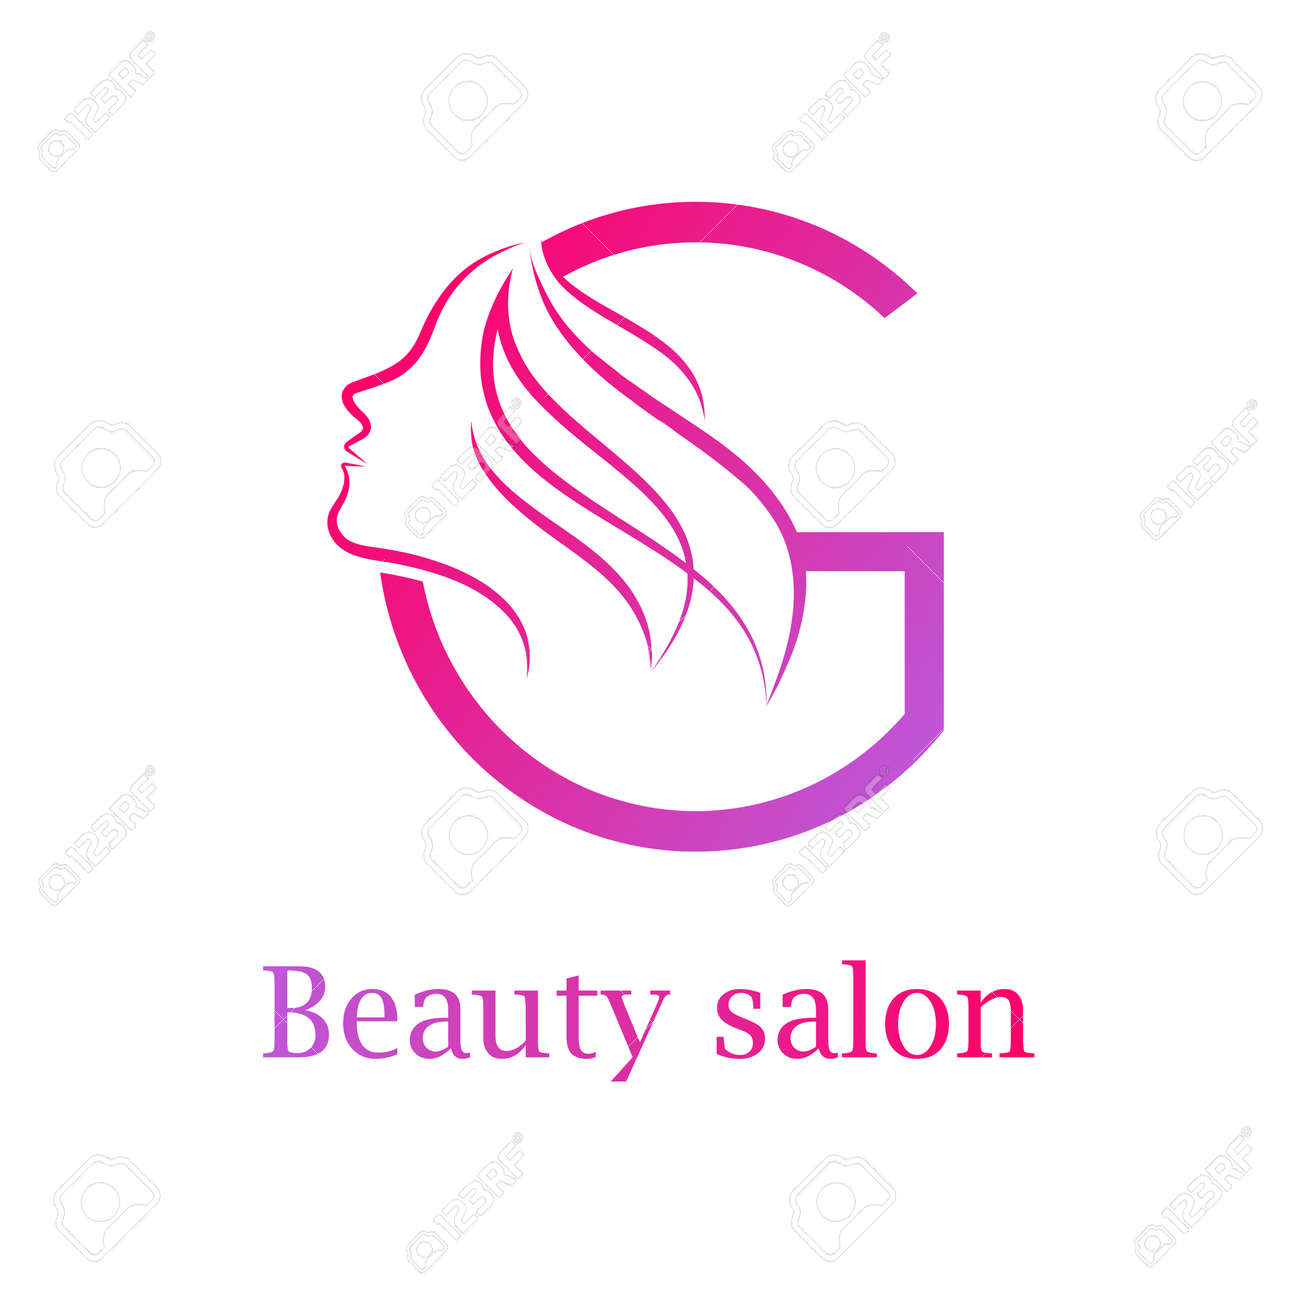 Abstract letter g logobeauty salon logo design template royalty abstract letter g logobeauty salon logo design template stock vector 84733902 altavistaventures Gallery